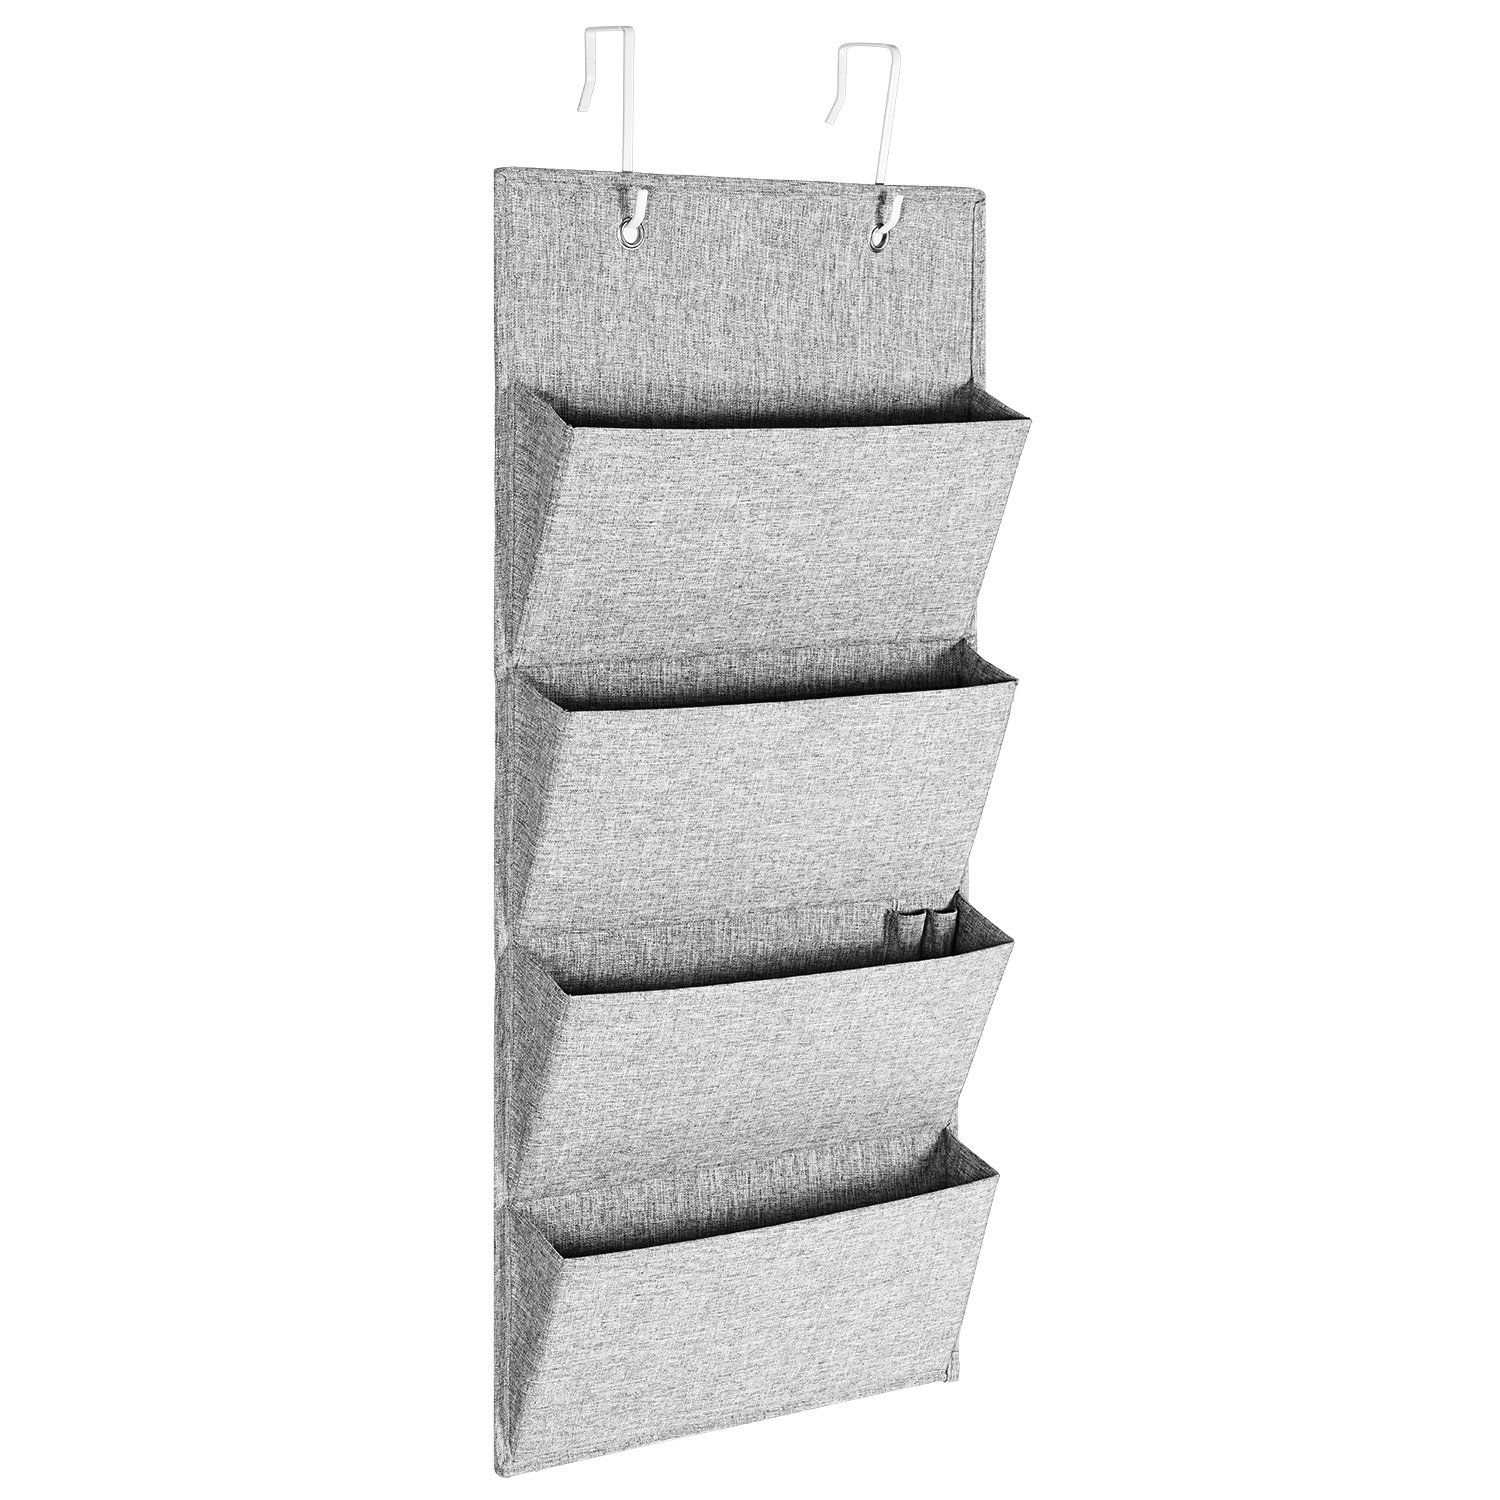 Hanging File Organizer MaidMAX Fabric Over The Door/ Wall Mount Office  Organizer For Folders Notebooks